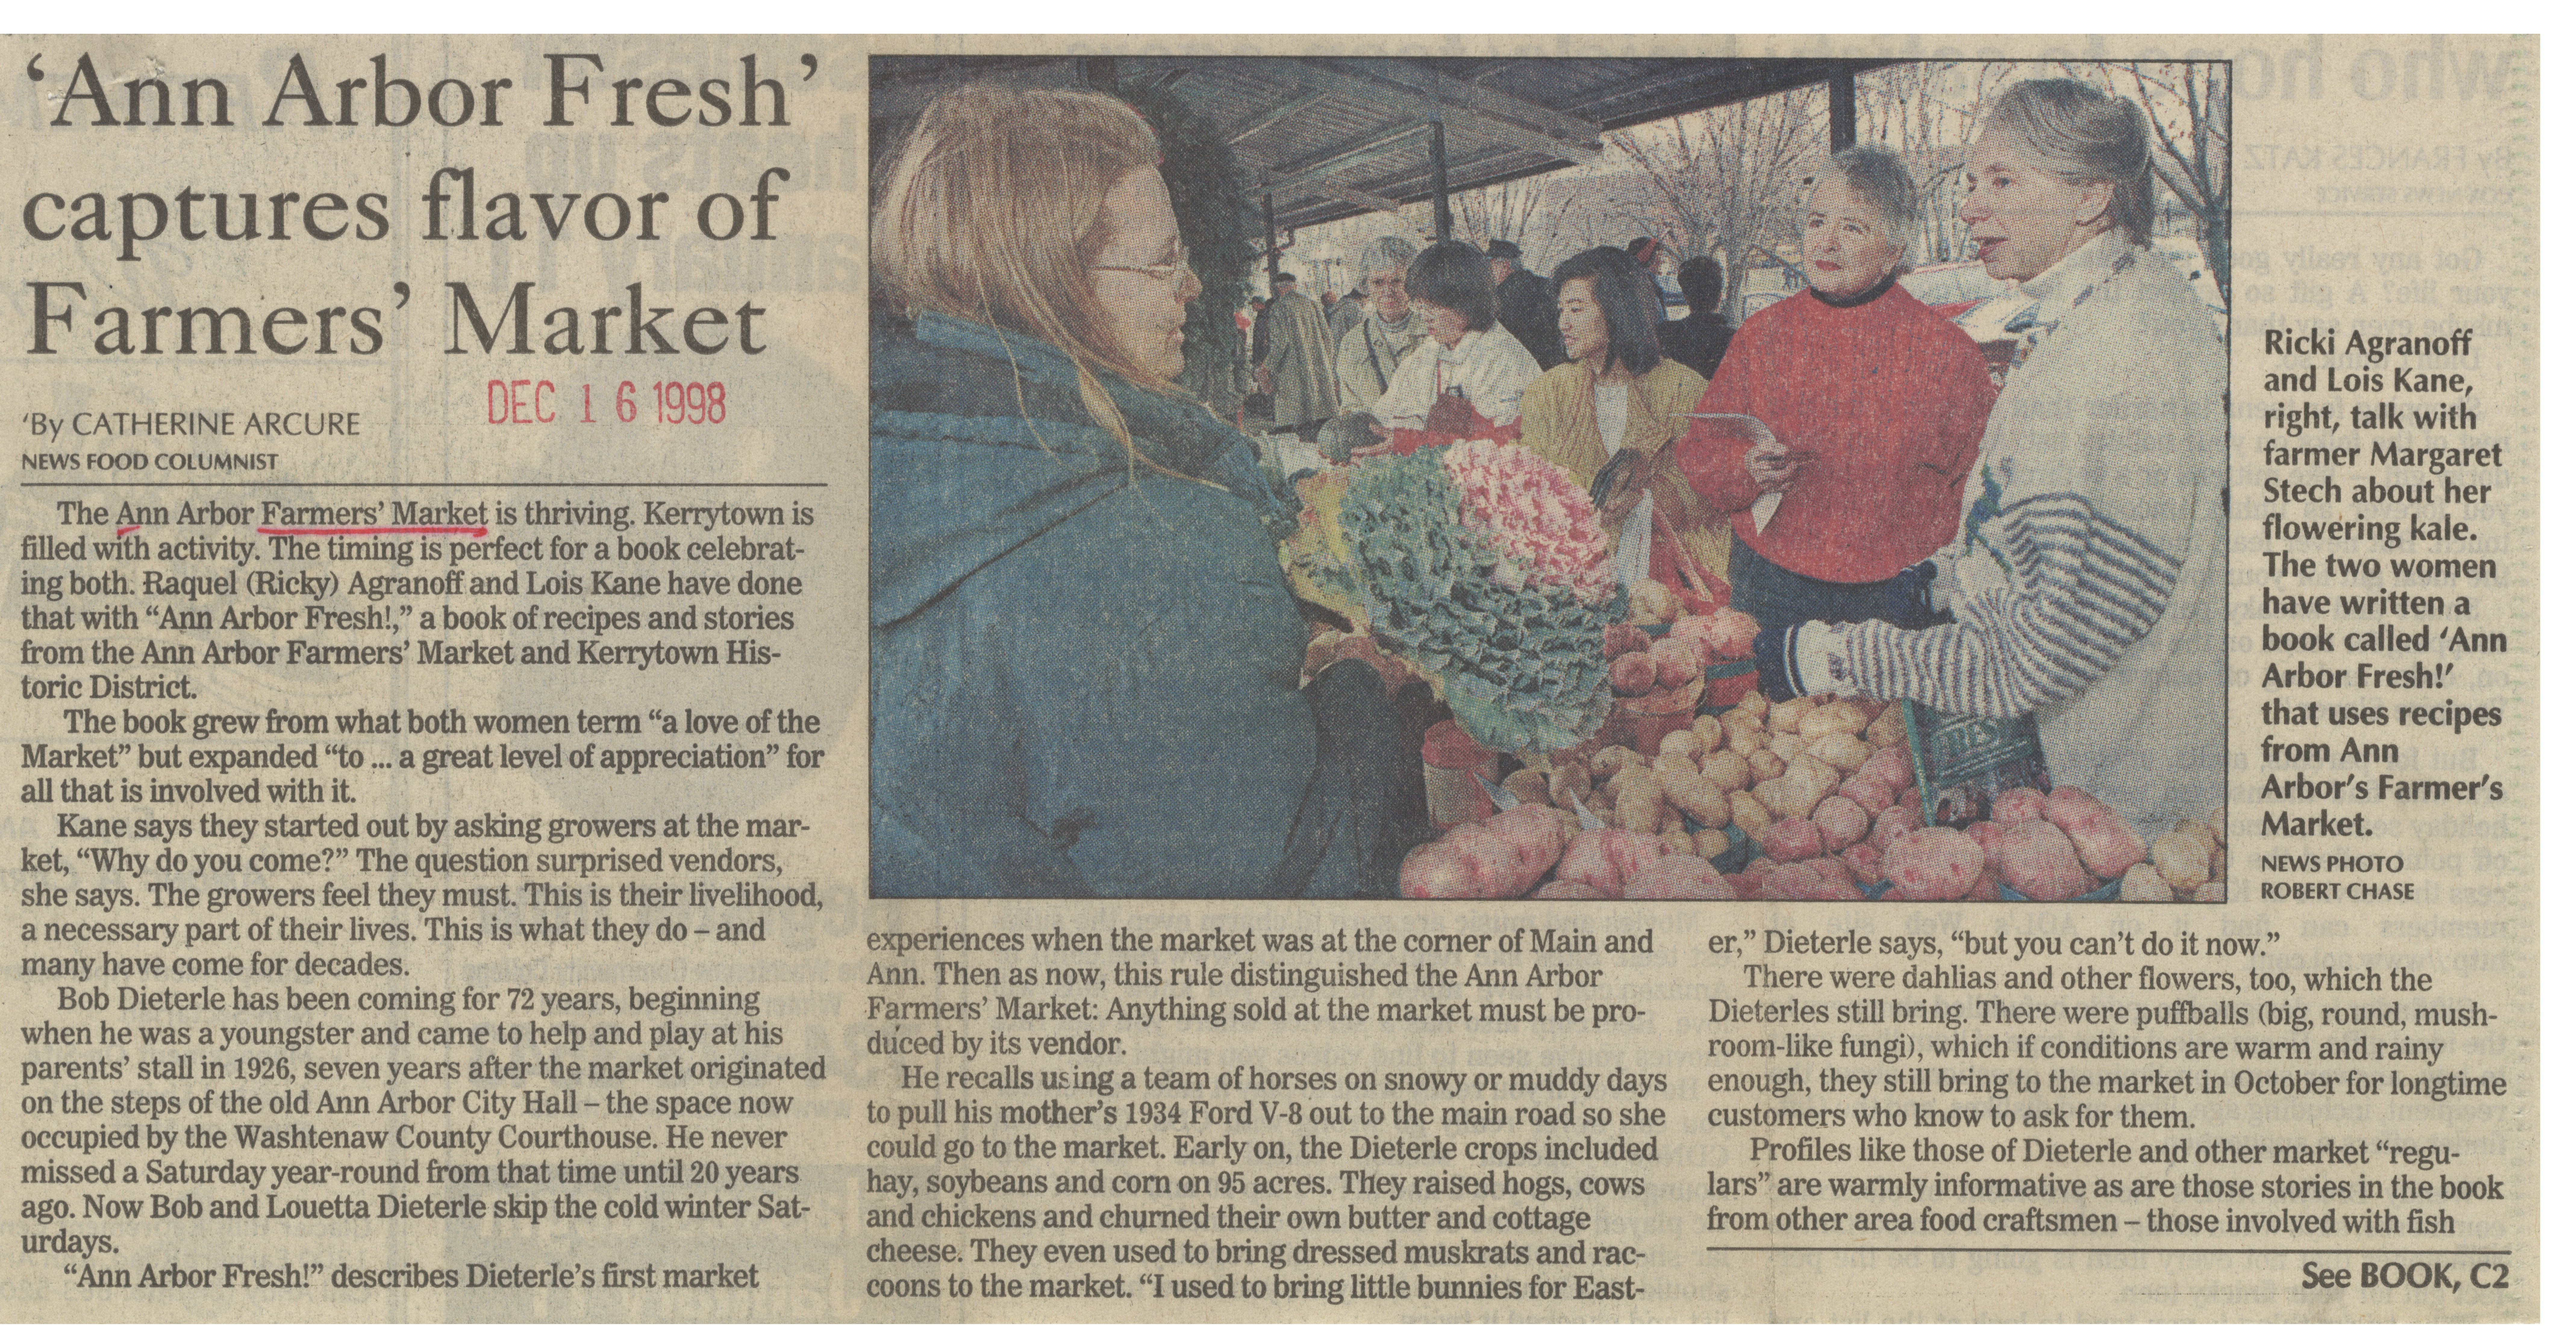 'Ann Arbor Fresh' Captures Flavor of Farmers' Market image